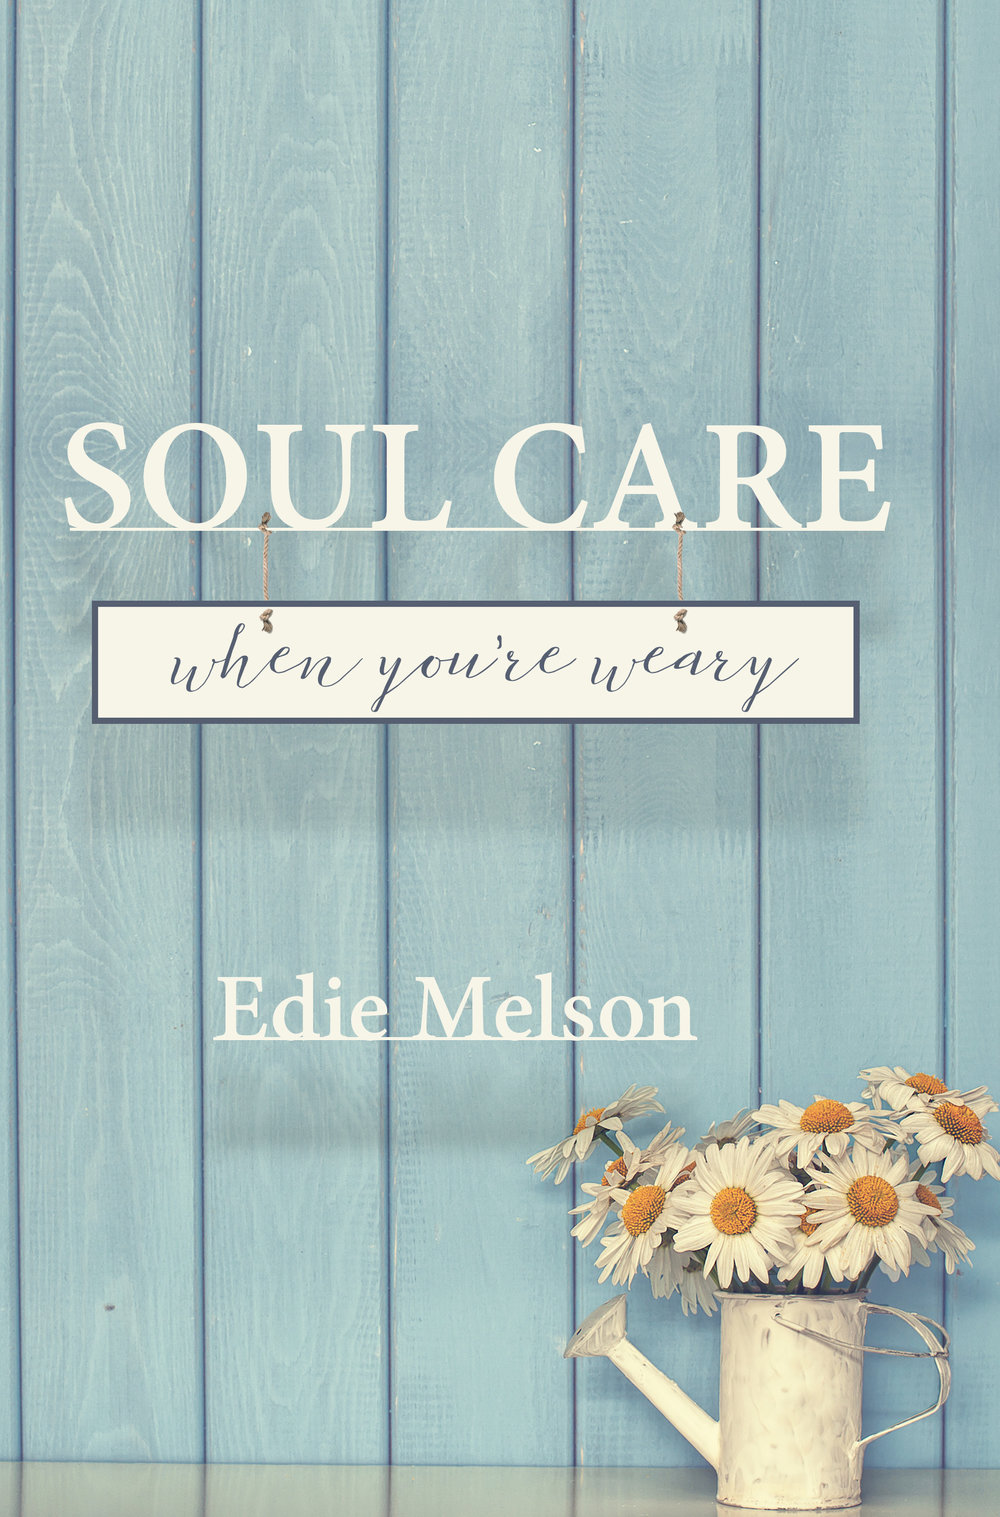 soul care final FRONT ONLY cover (1).jpg